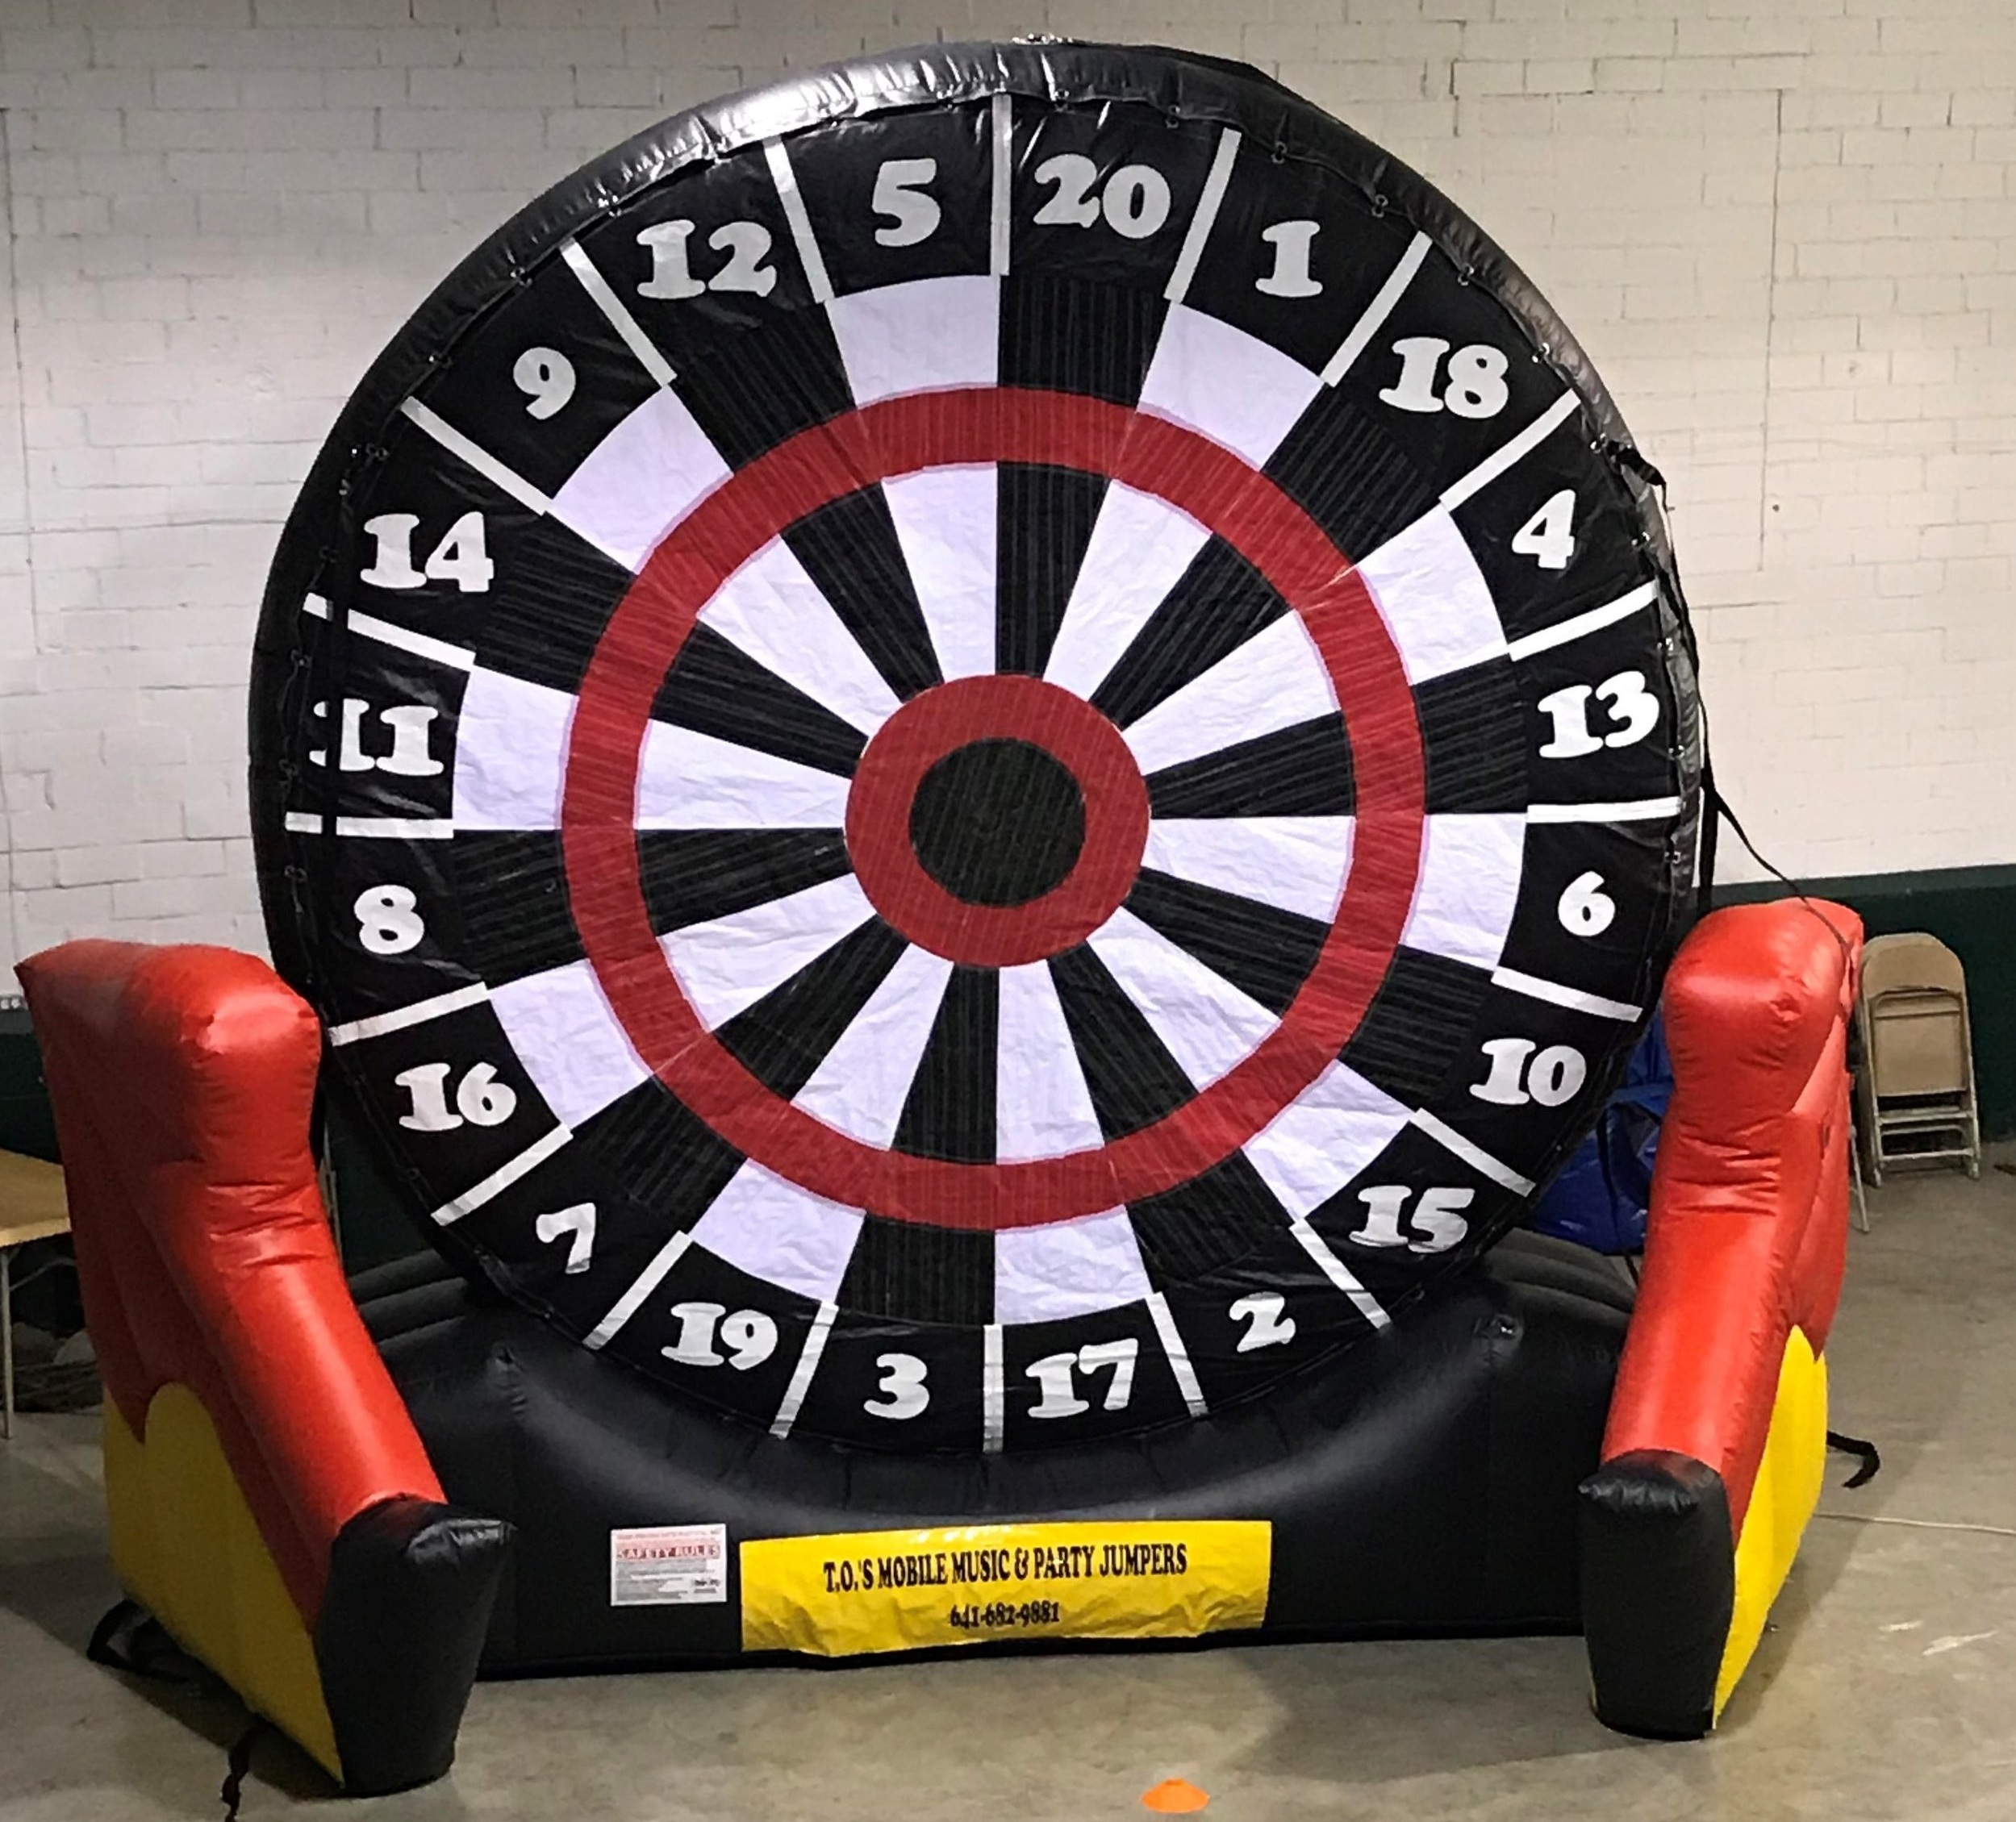 FOOT DARTS$150.00 + TAX - Giant 16 ft. X 20 ft. dart board comes with 6 Velcro balls to provide a entire day of fun for all ages. Balls are easily removed with a built in strap that knocks the balls loose and back to the ground.